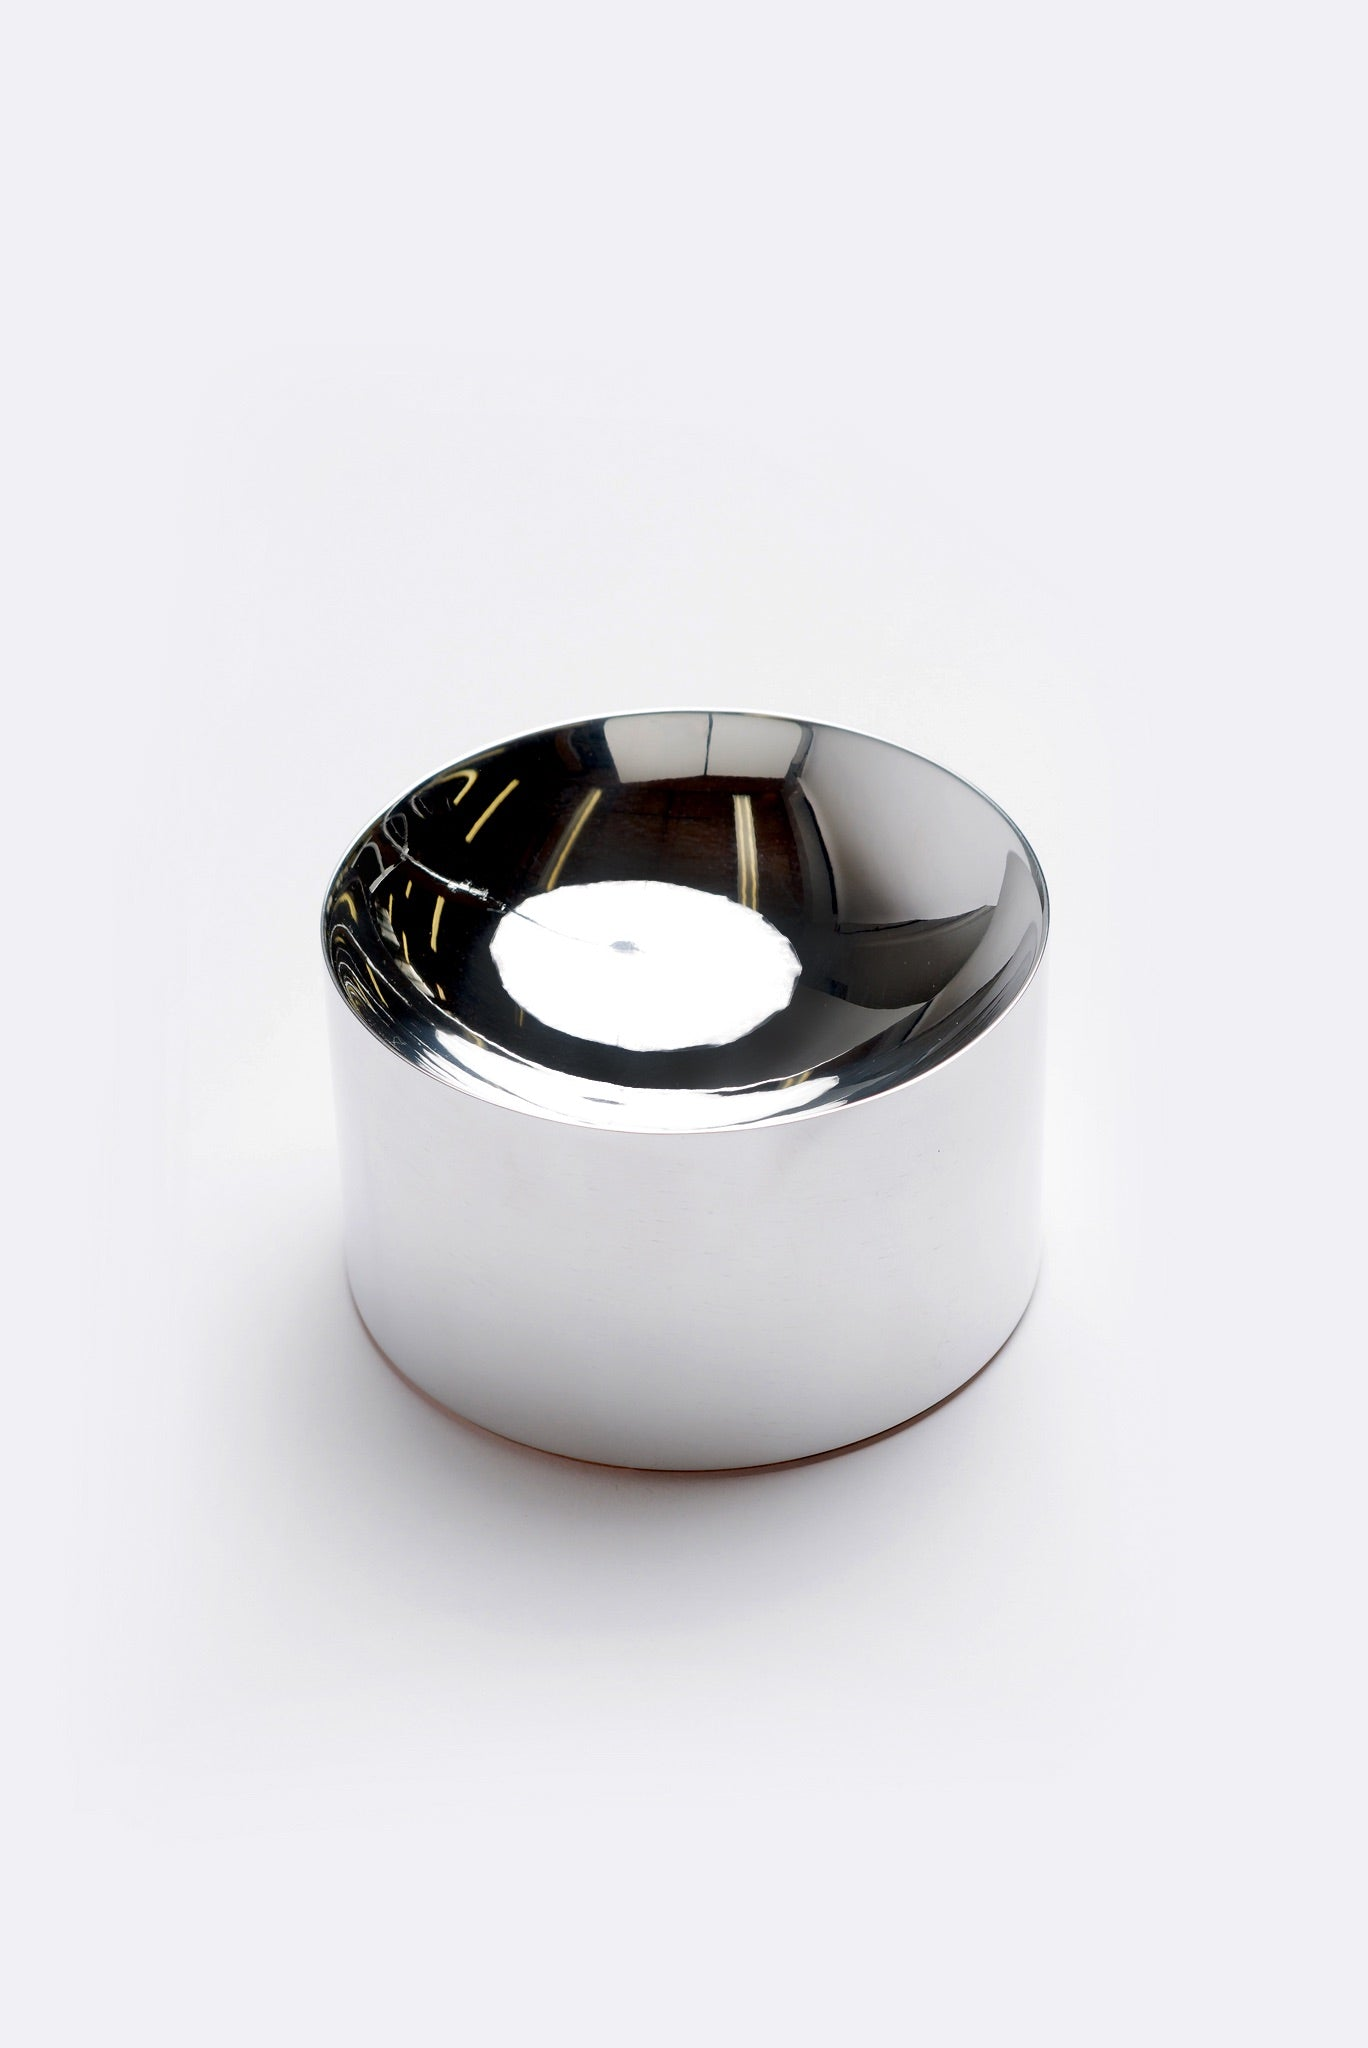 Sand Incense Bowl in Solid Mirror Polished Aluminum